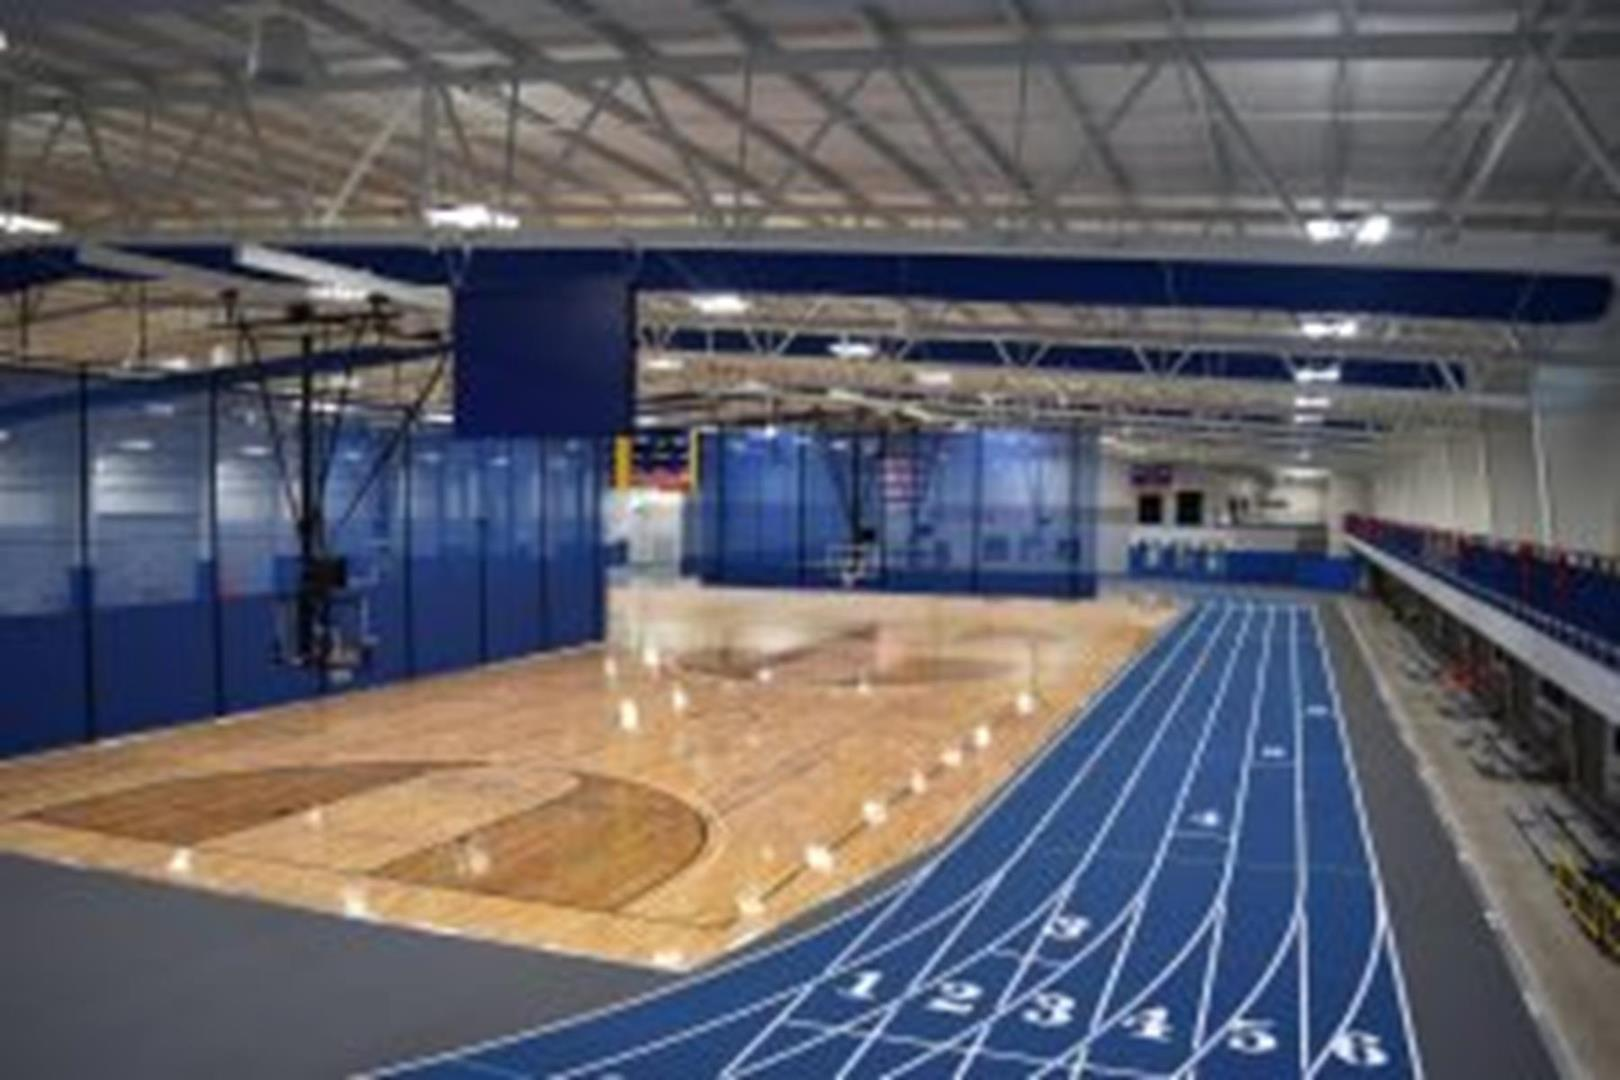 Plassman Athletic Center 2